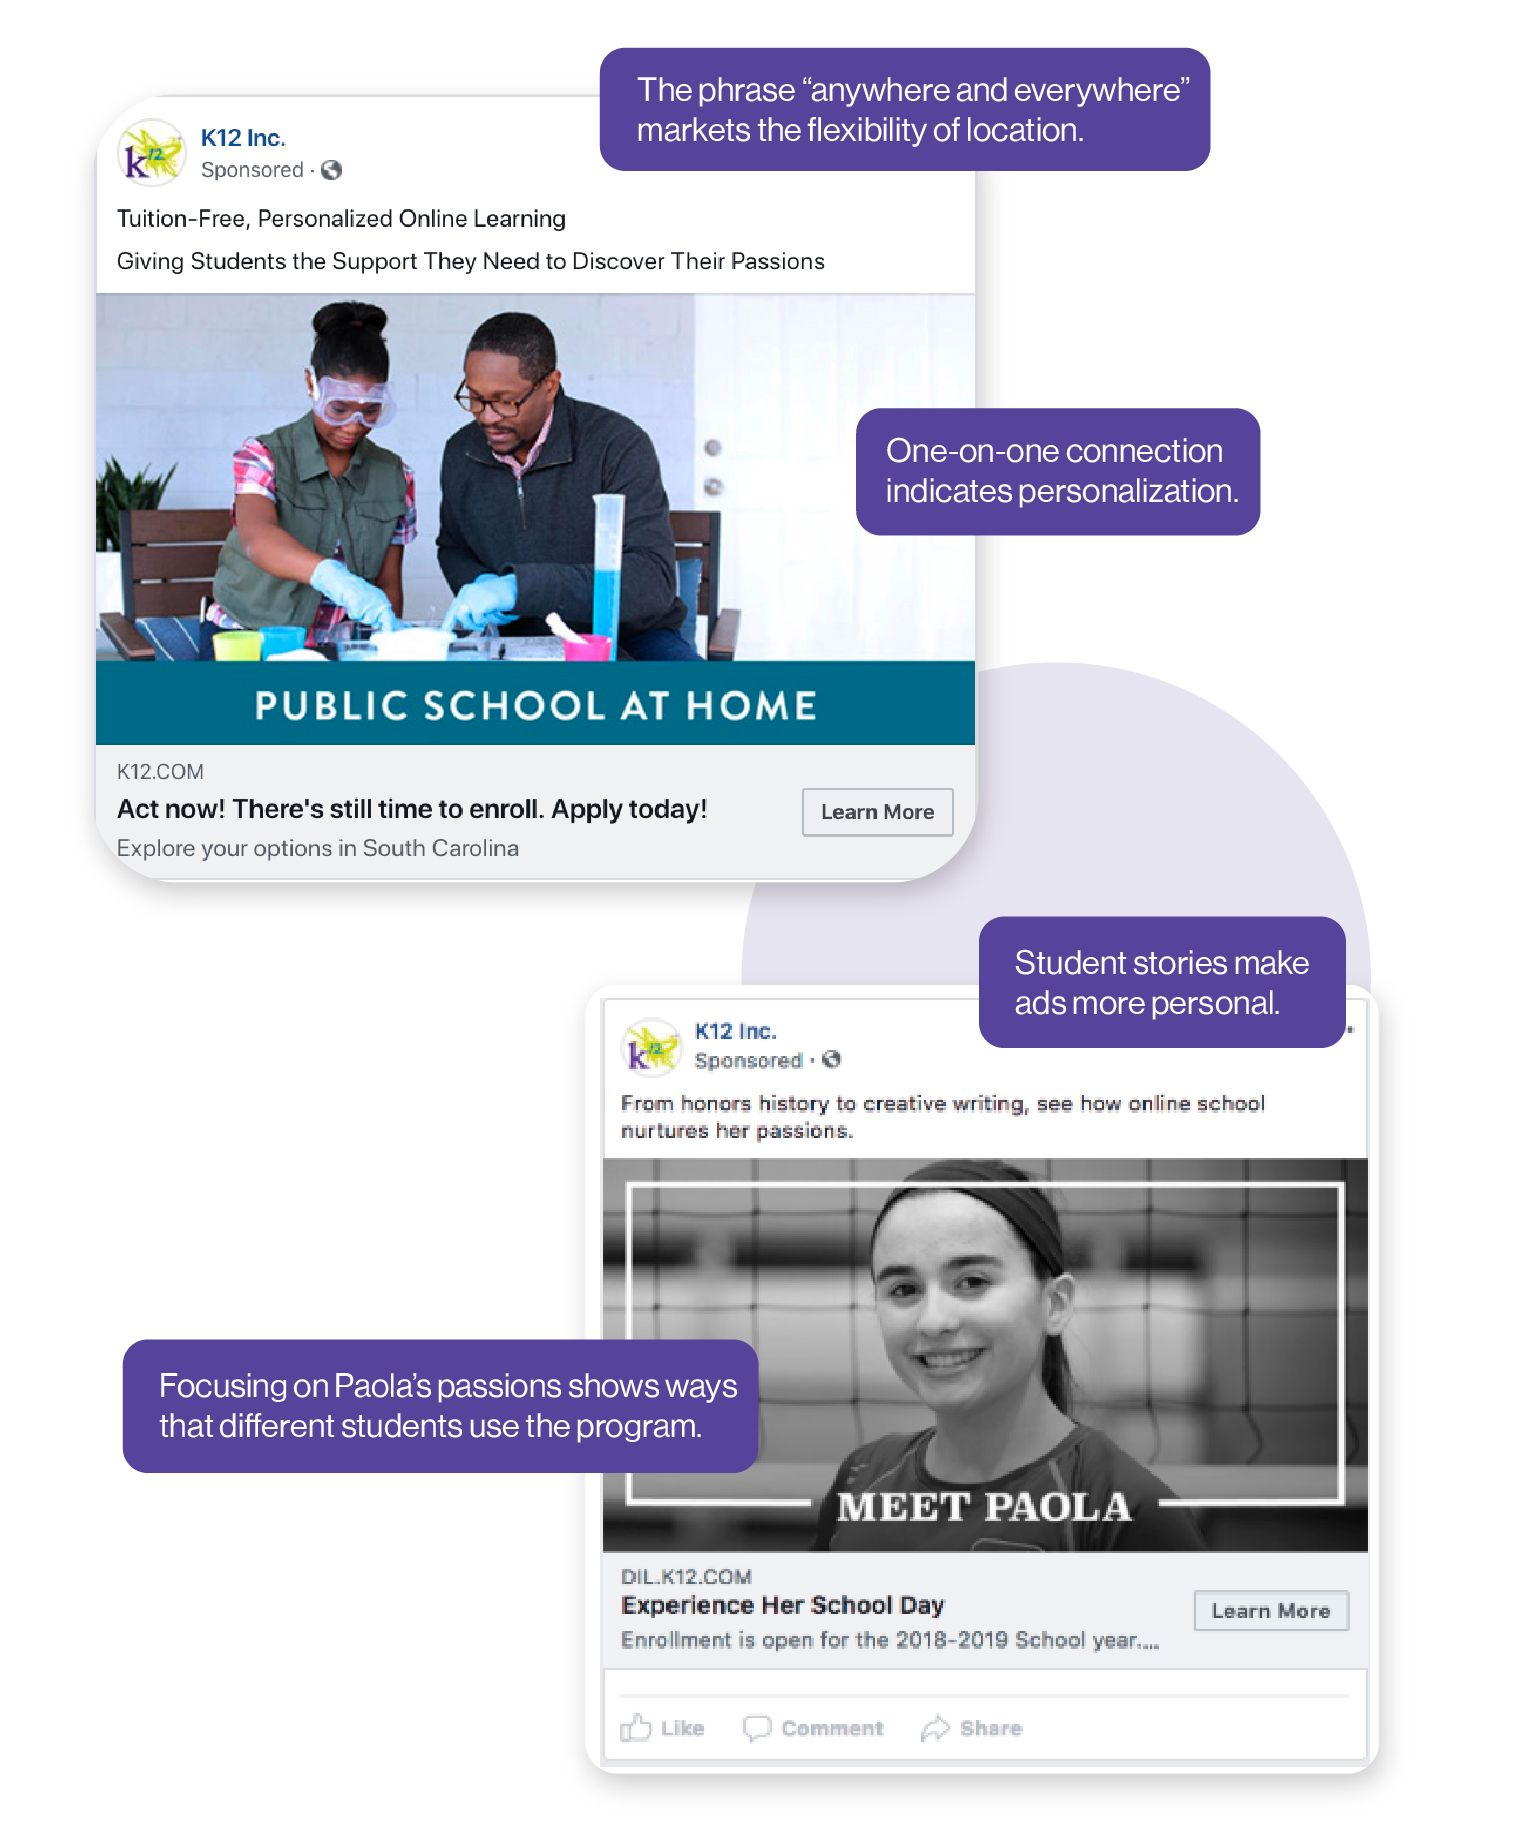 Image: K12 Ad examples demonstrating how K12 uses its ads to emphasize their students' personalized learning and flexibility. They often drive home these messages by highlighting student stories, which make the ads more personal.